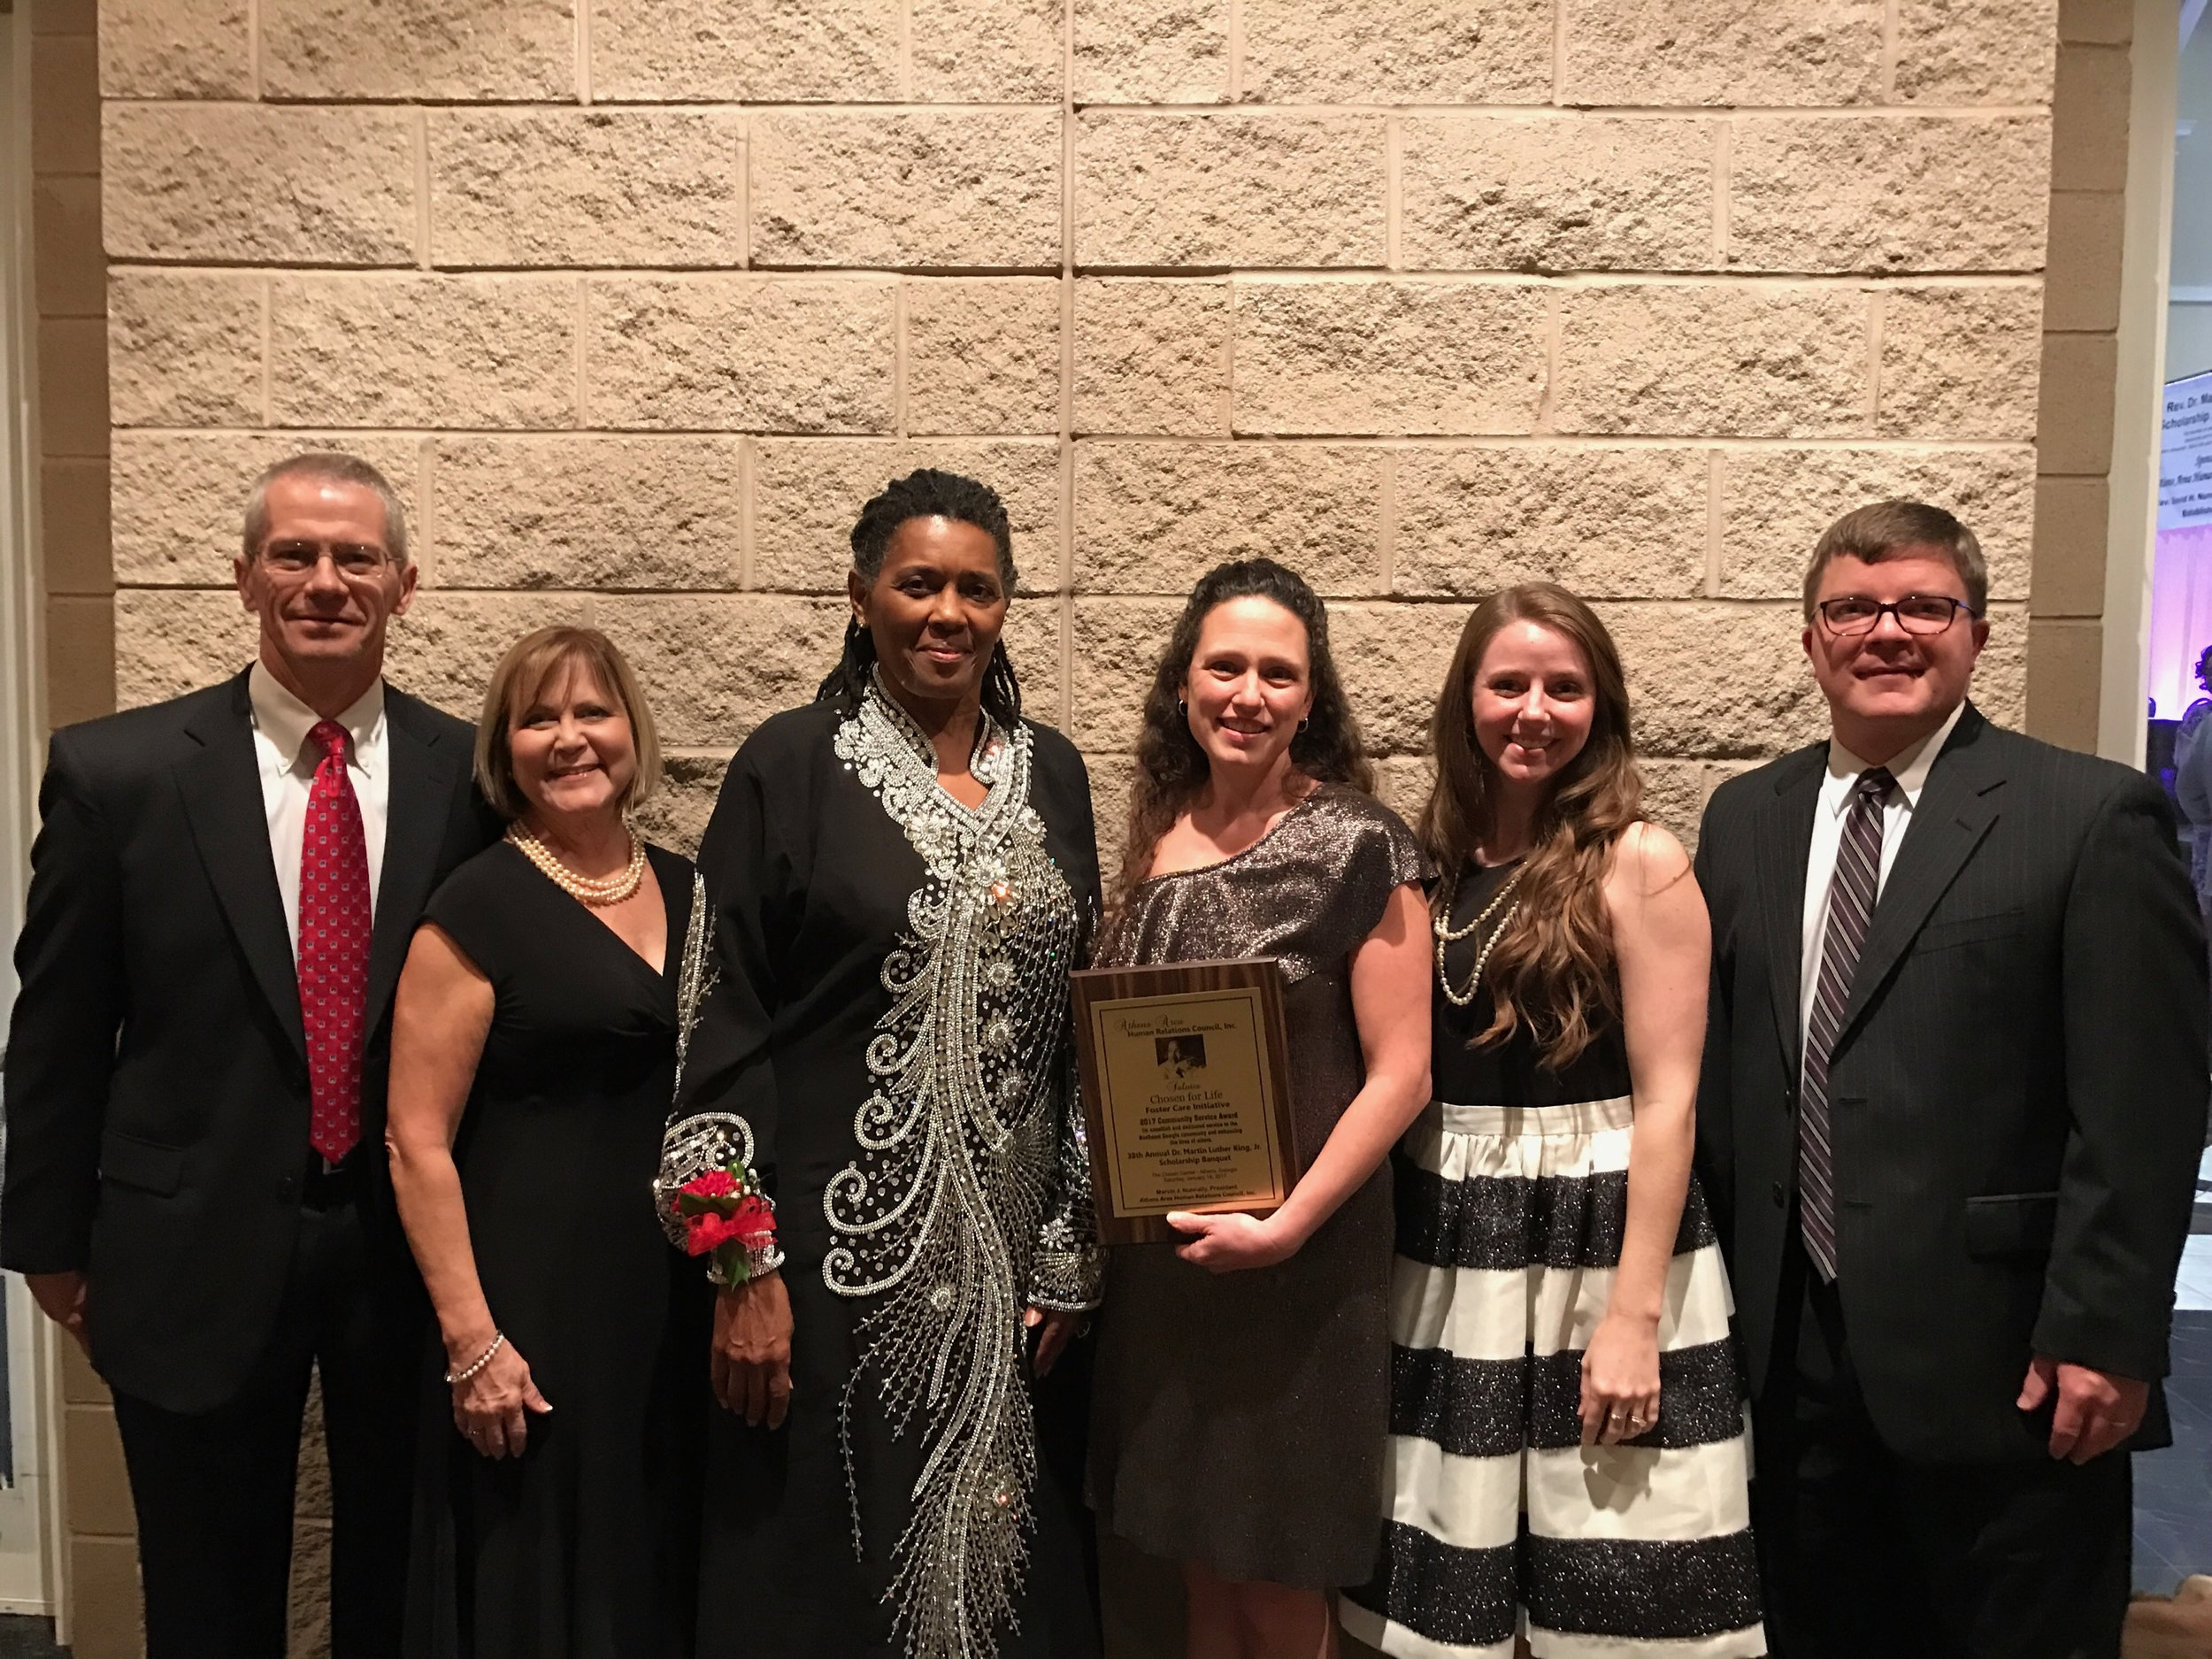 Chosen for Life Chairman of the Board and Vice Chairwoman, Bryan and Lisa Miller, joined Chosen for Life staff at the AAHRC's banquet as Kelly Brooks accepted the Community Service Award for the Chosen for Life Ministries Foster Care Initiative.